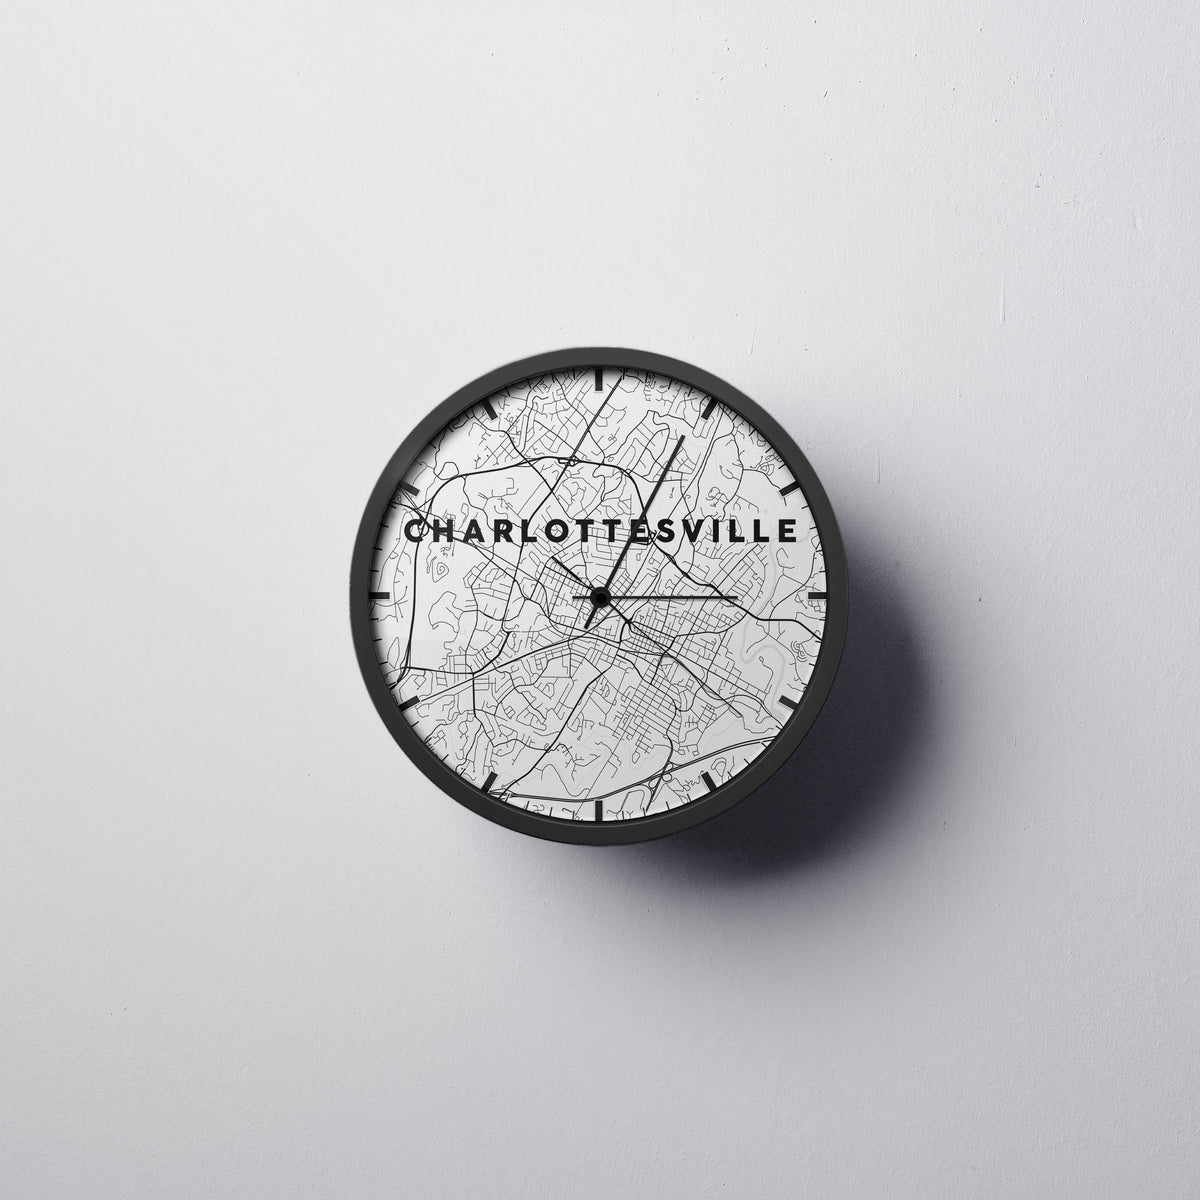 Charlottesville Wall Clock - Point Two Design